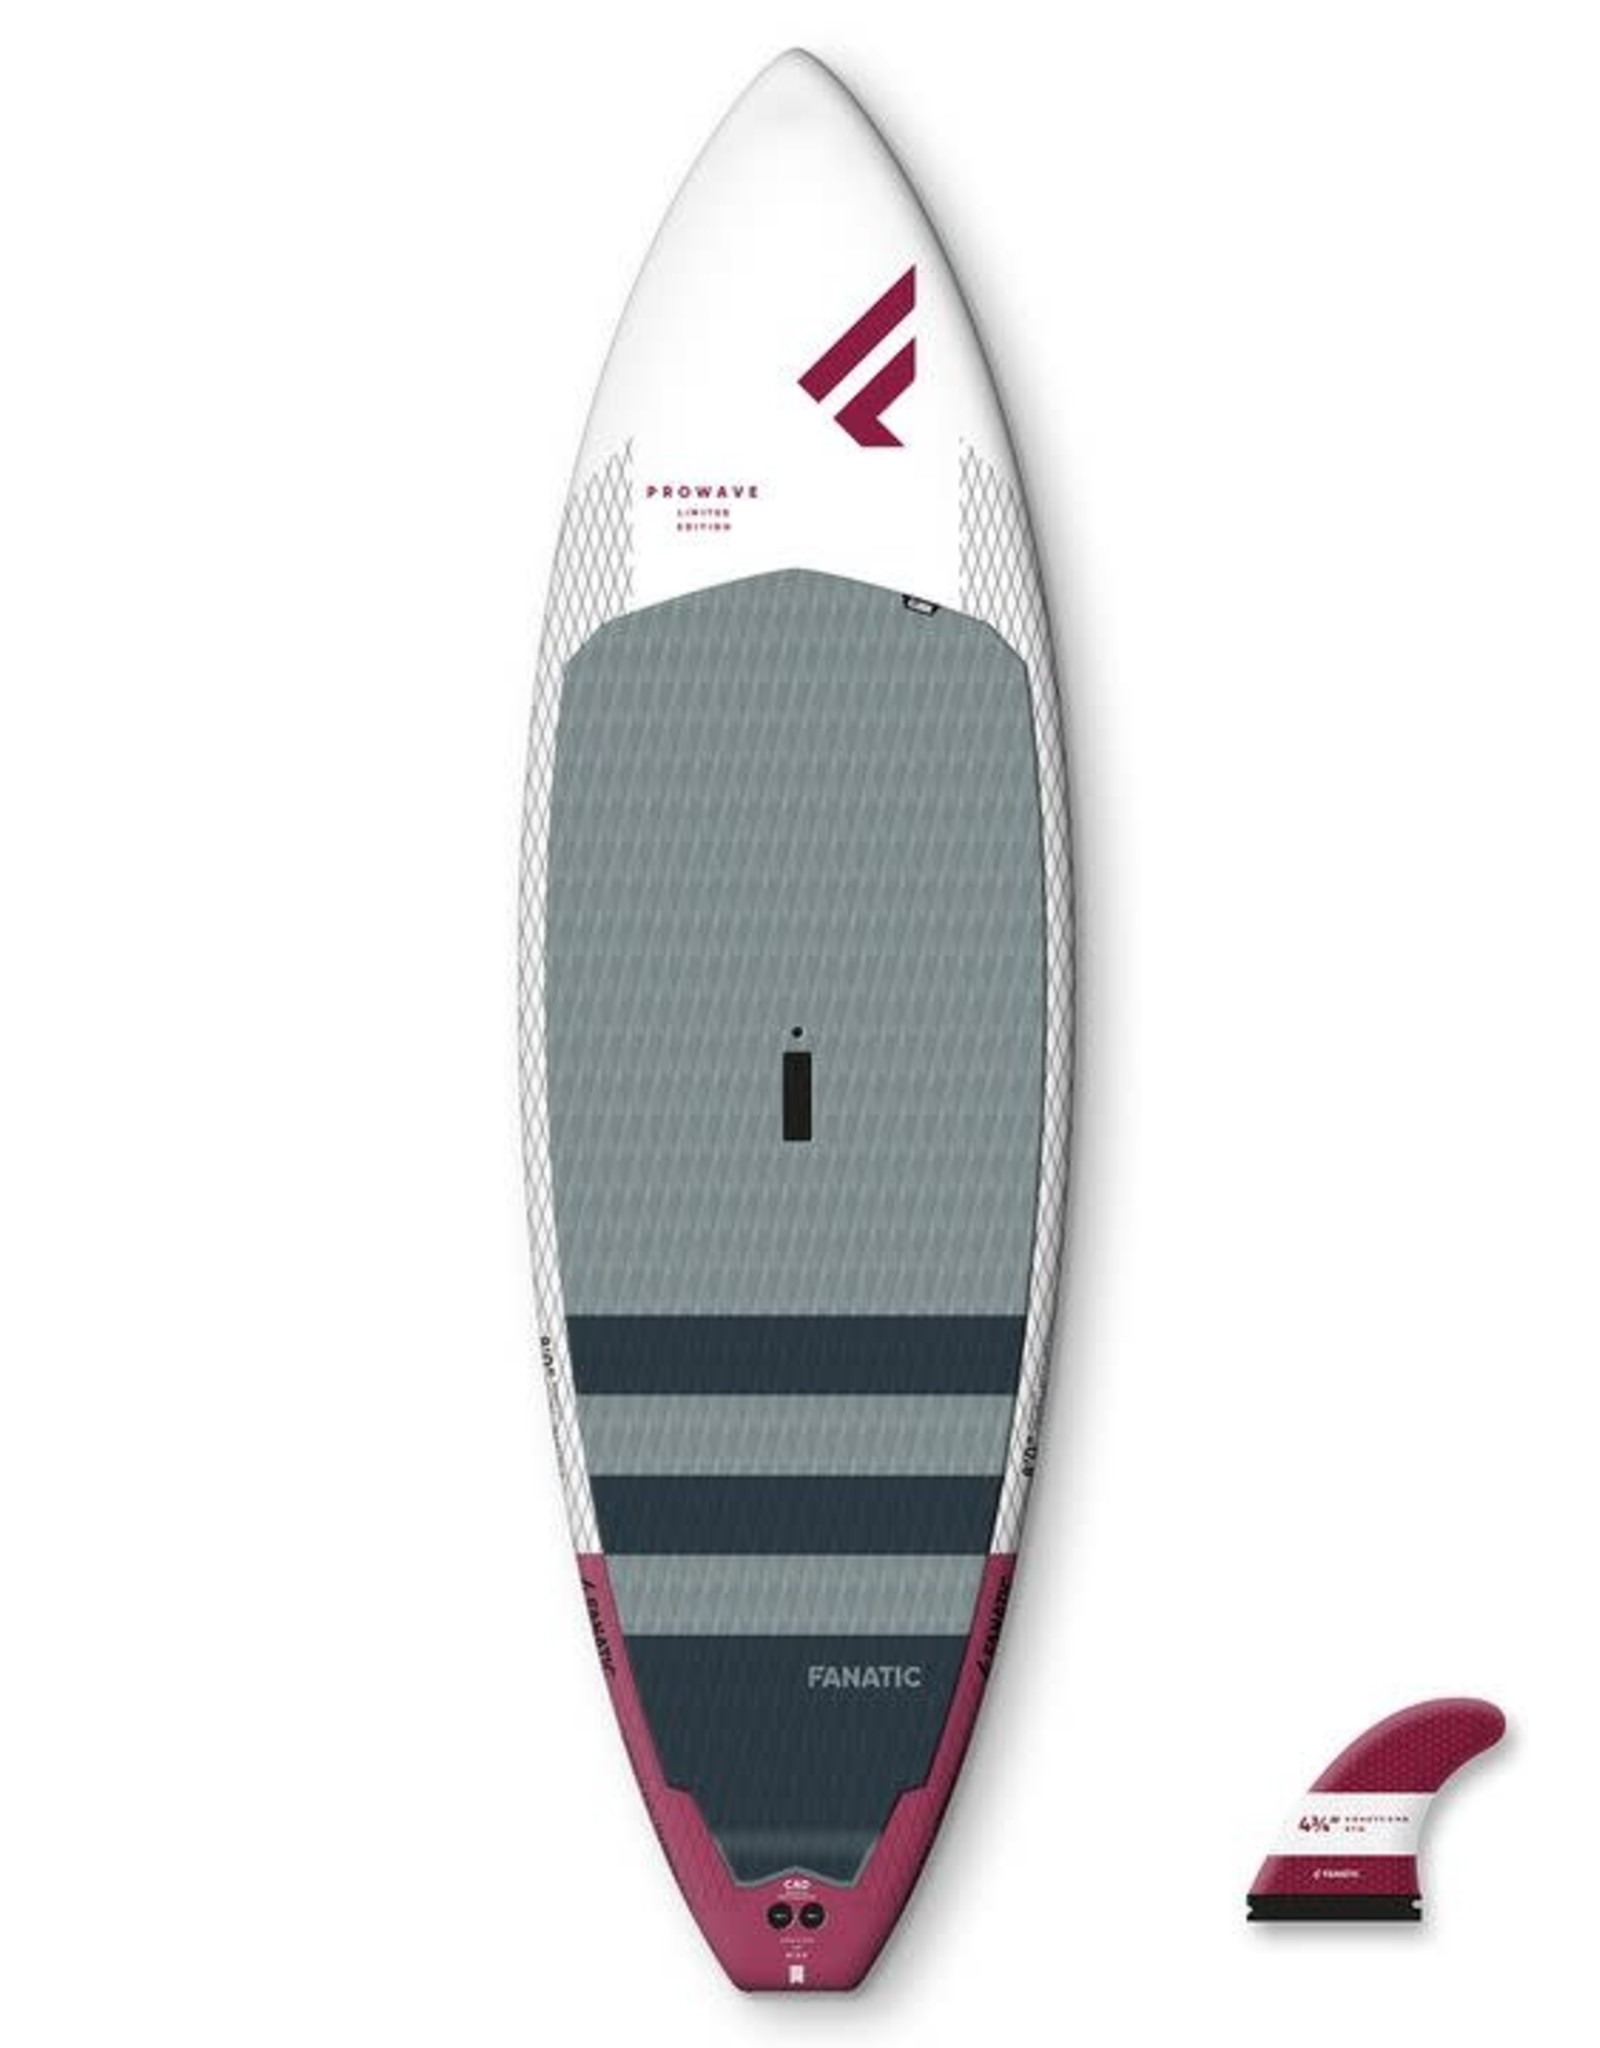 Fanatic 2020 Fanatic Pro Wave LTD 8'5